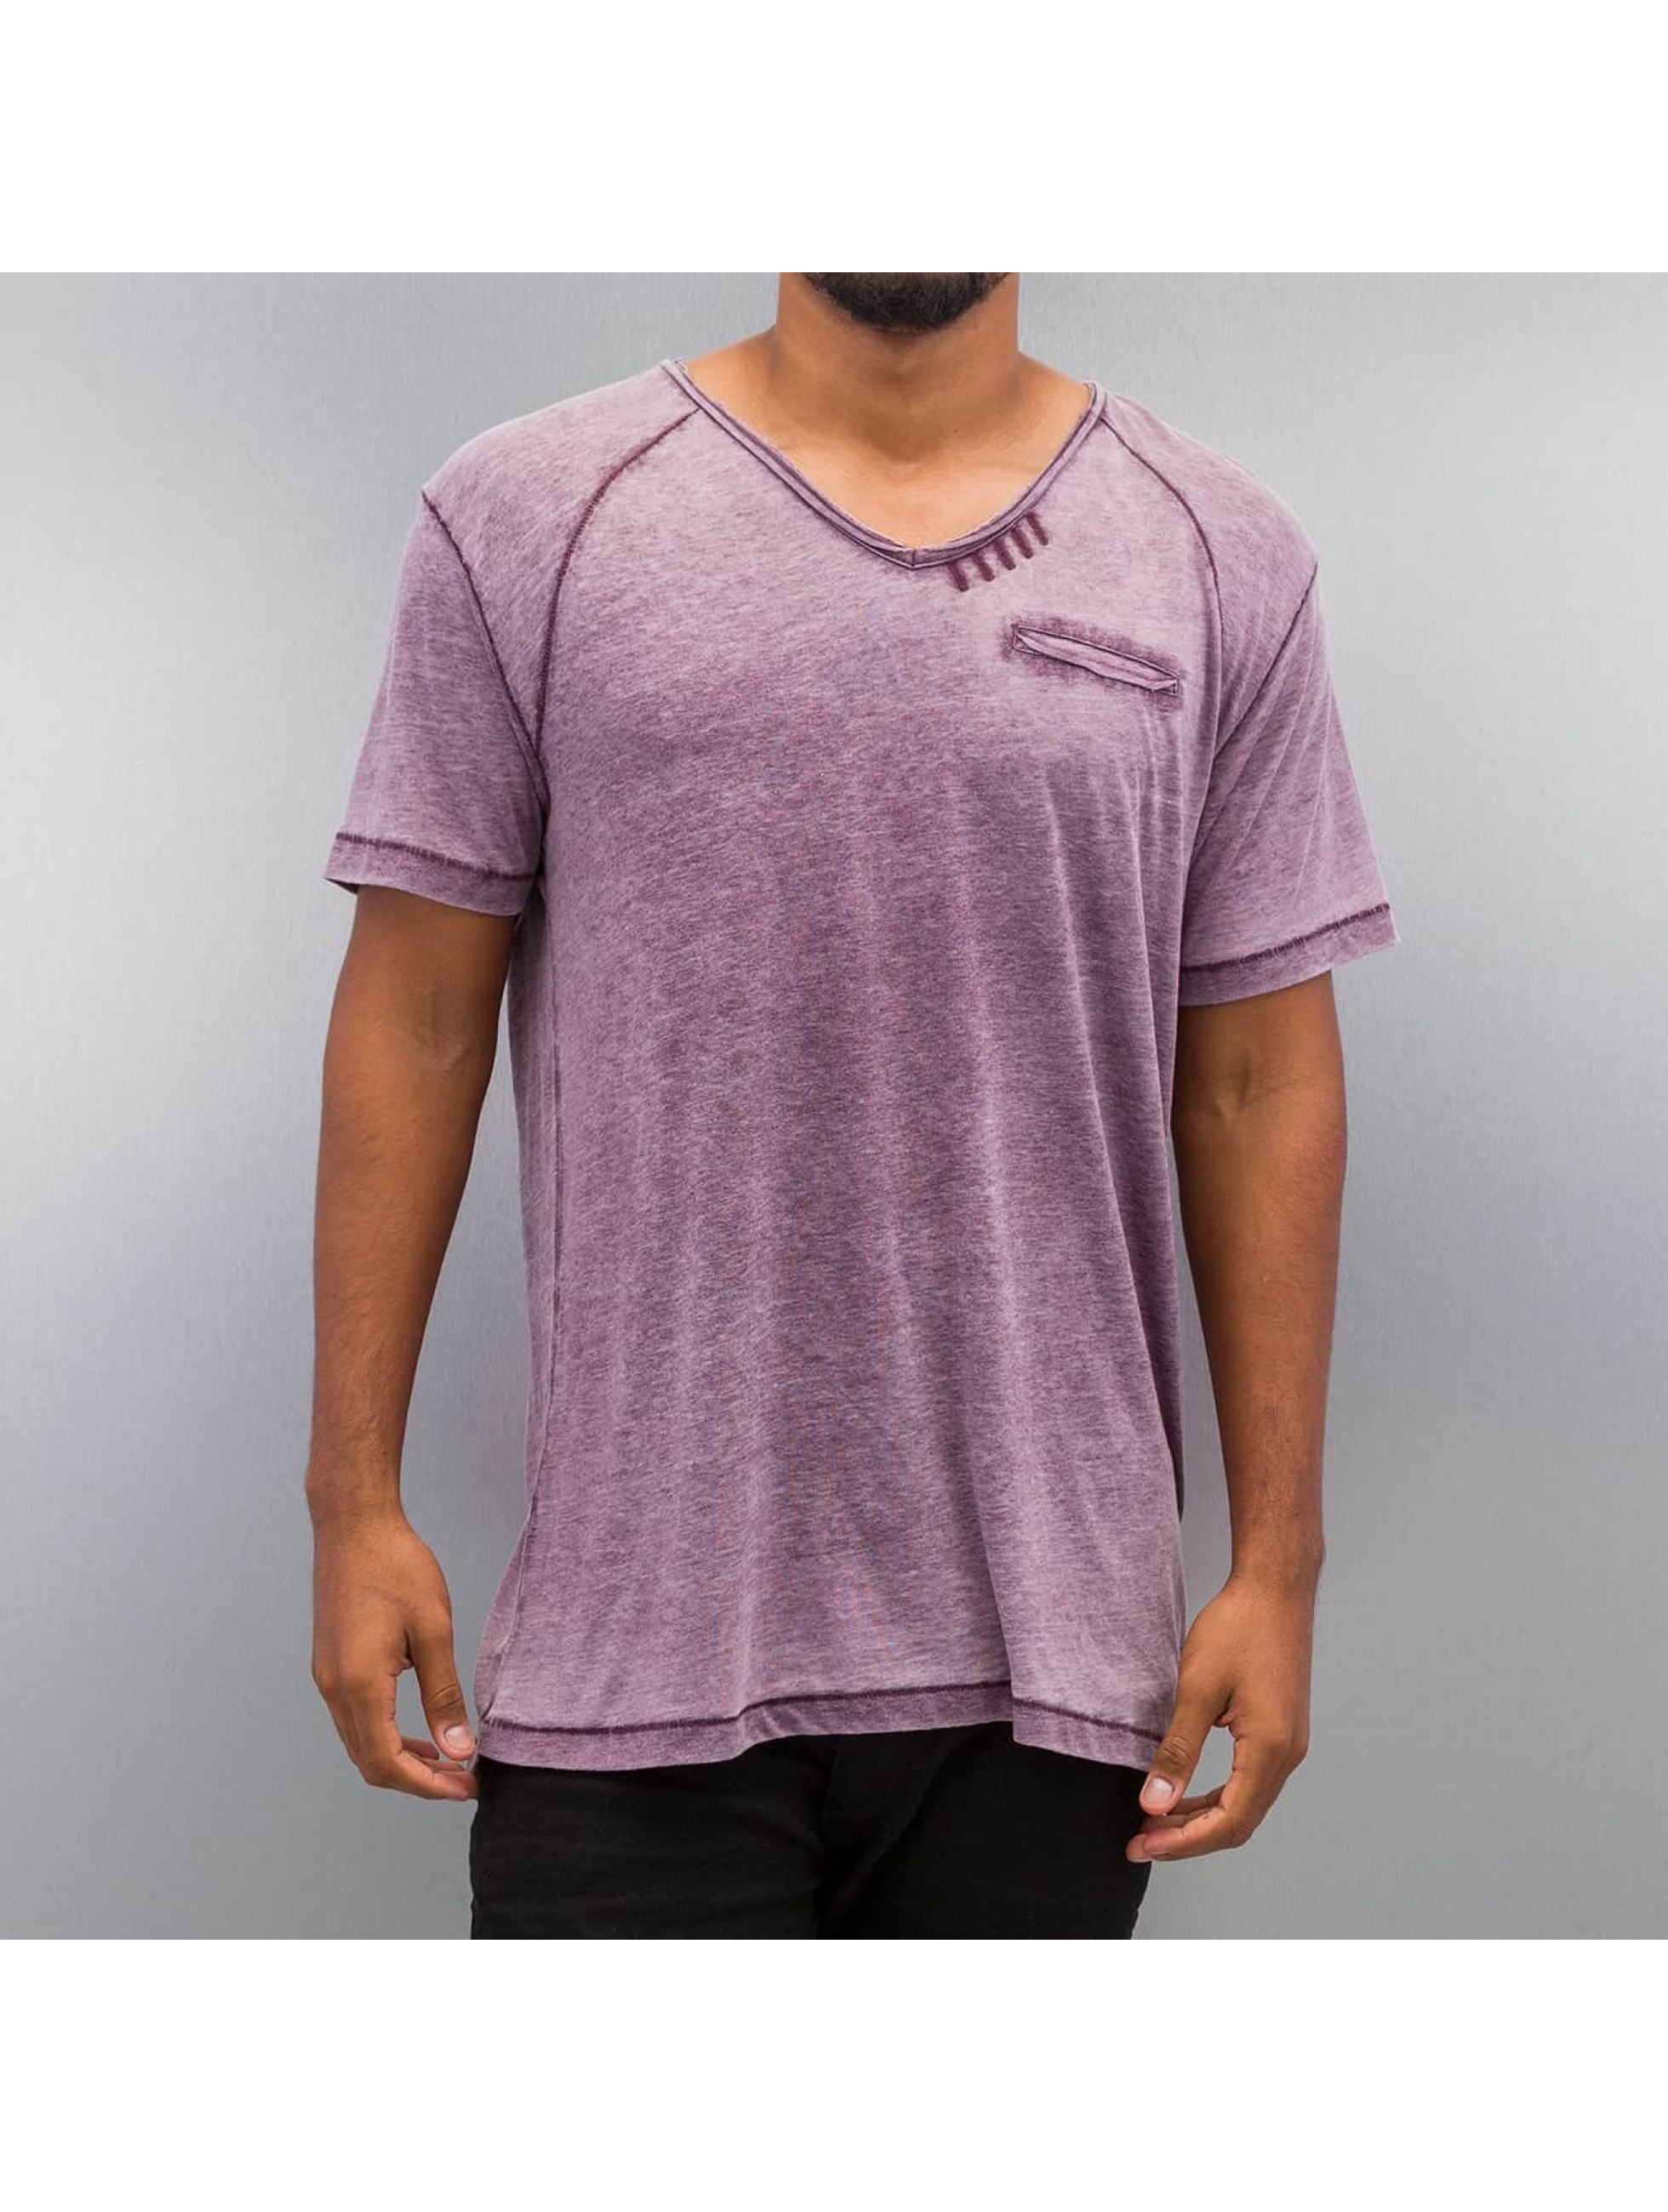 T-Shirt Burn Out Effect in violet